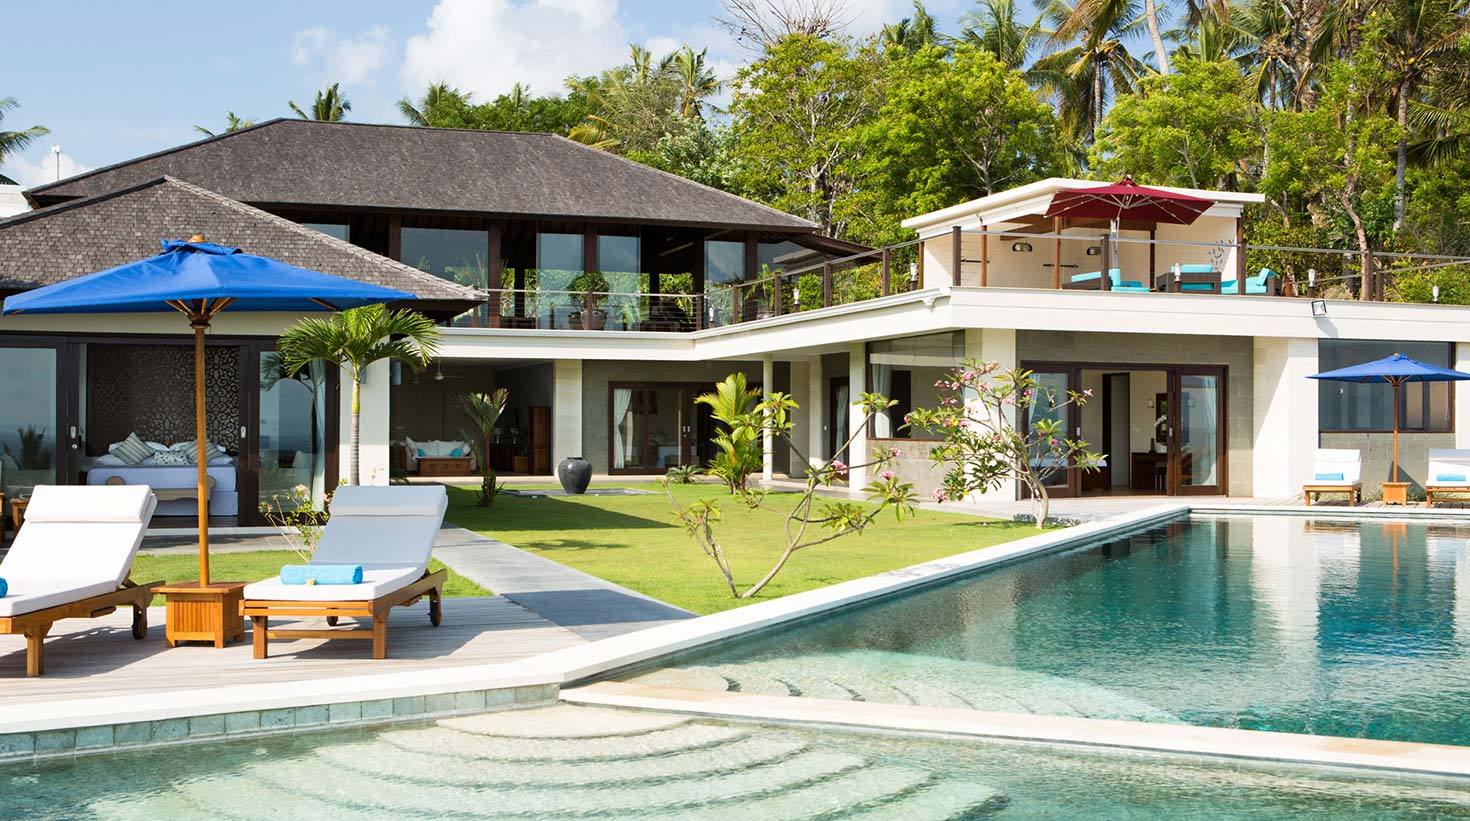 Rent this luxury Villa in Bali for your holiday with family or honeymoon